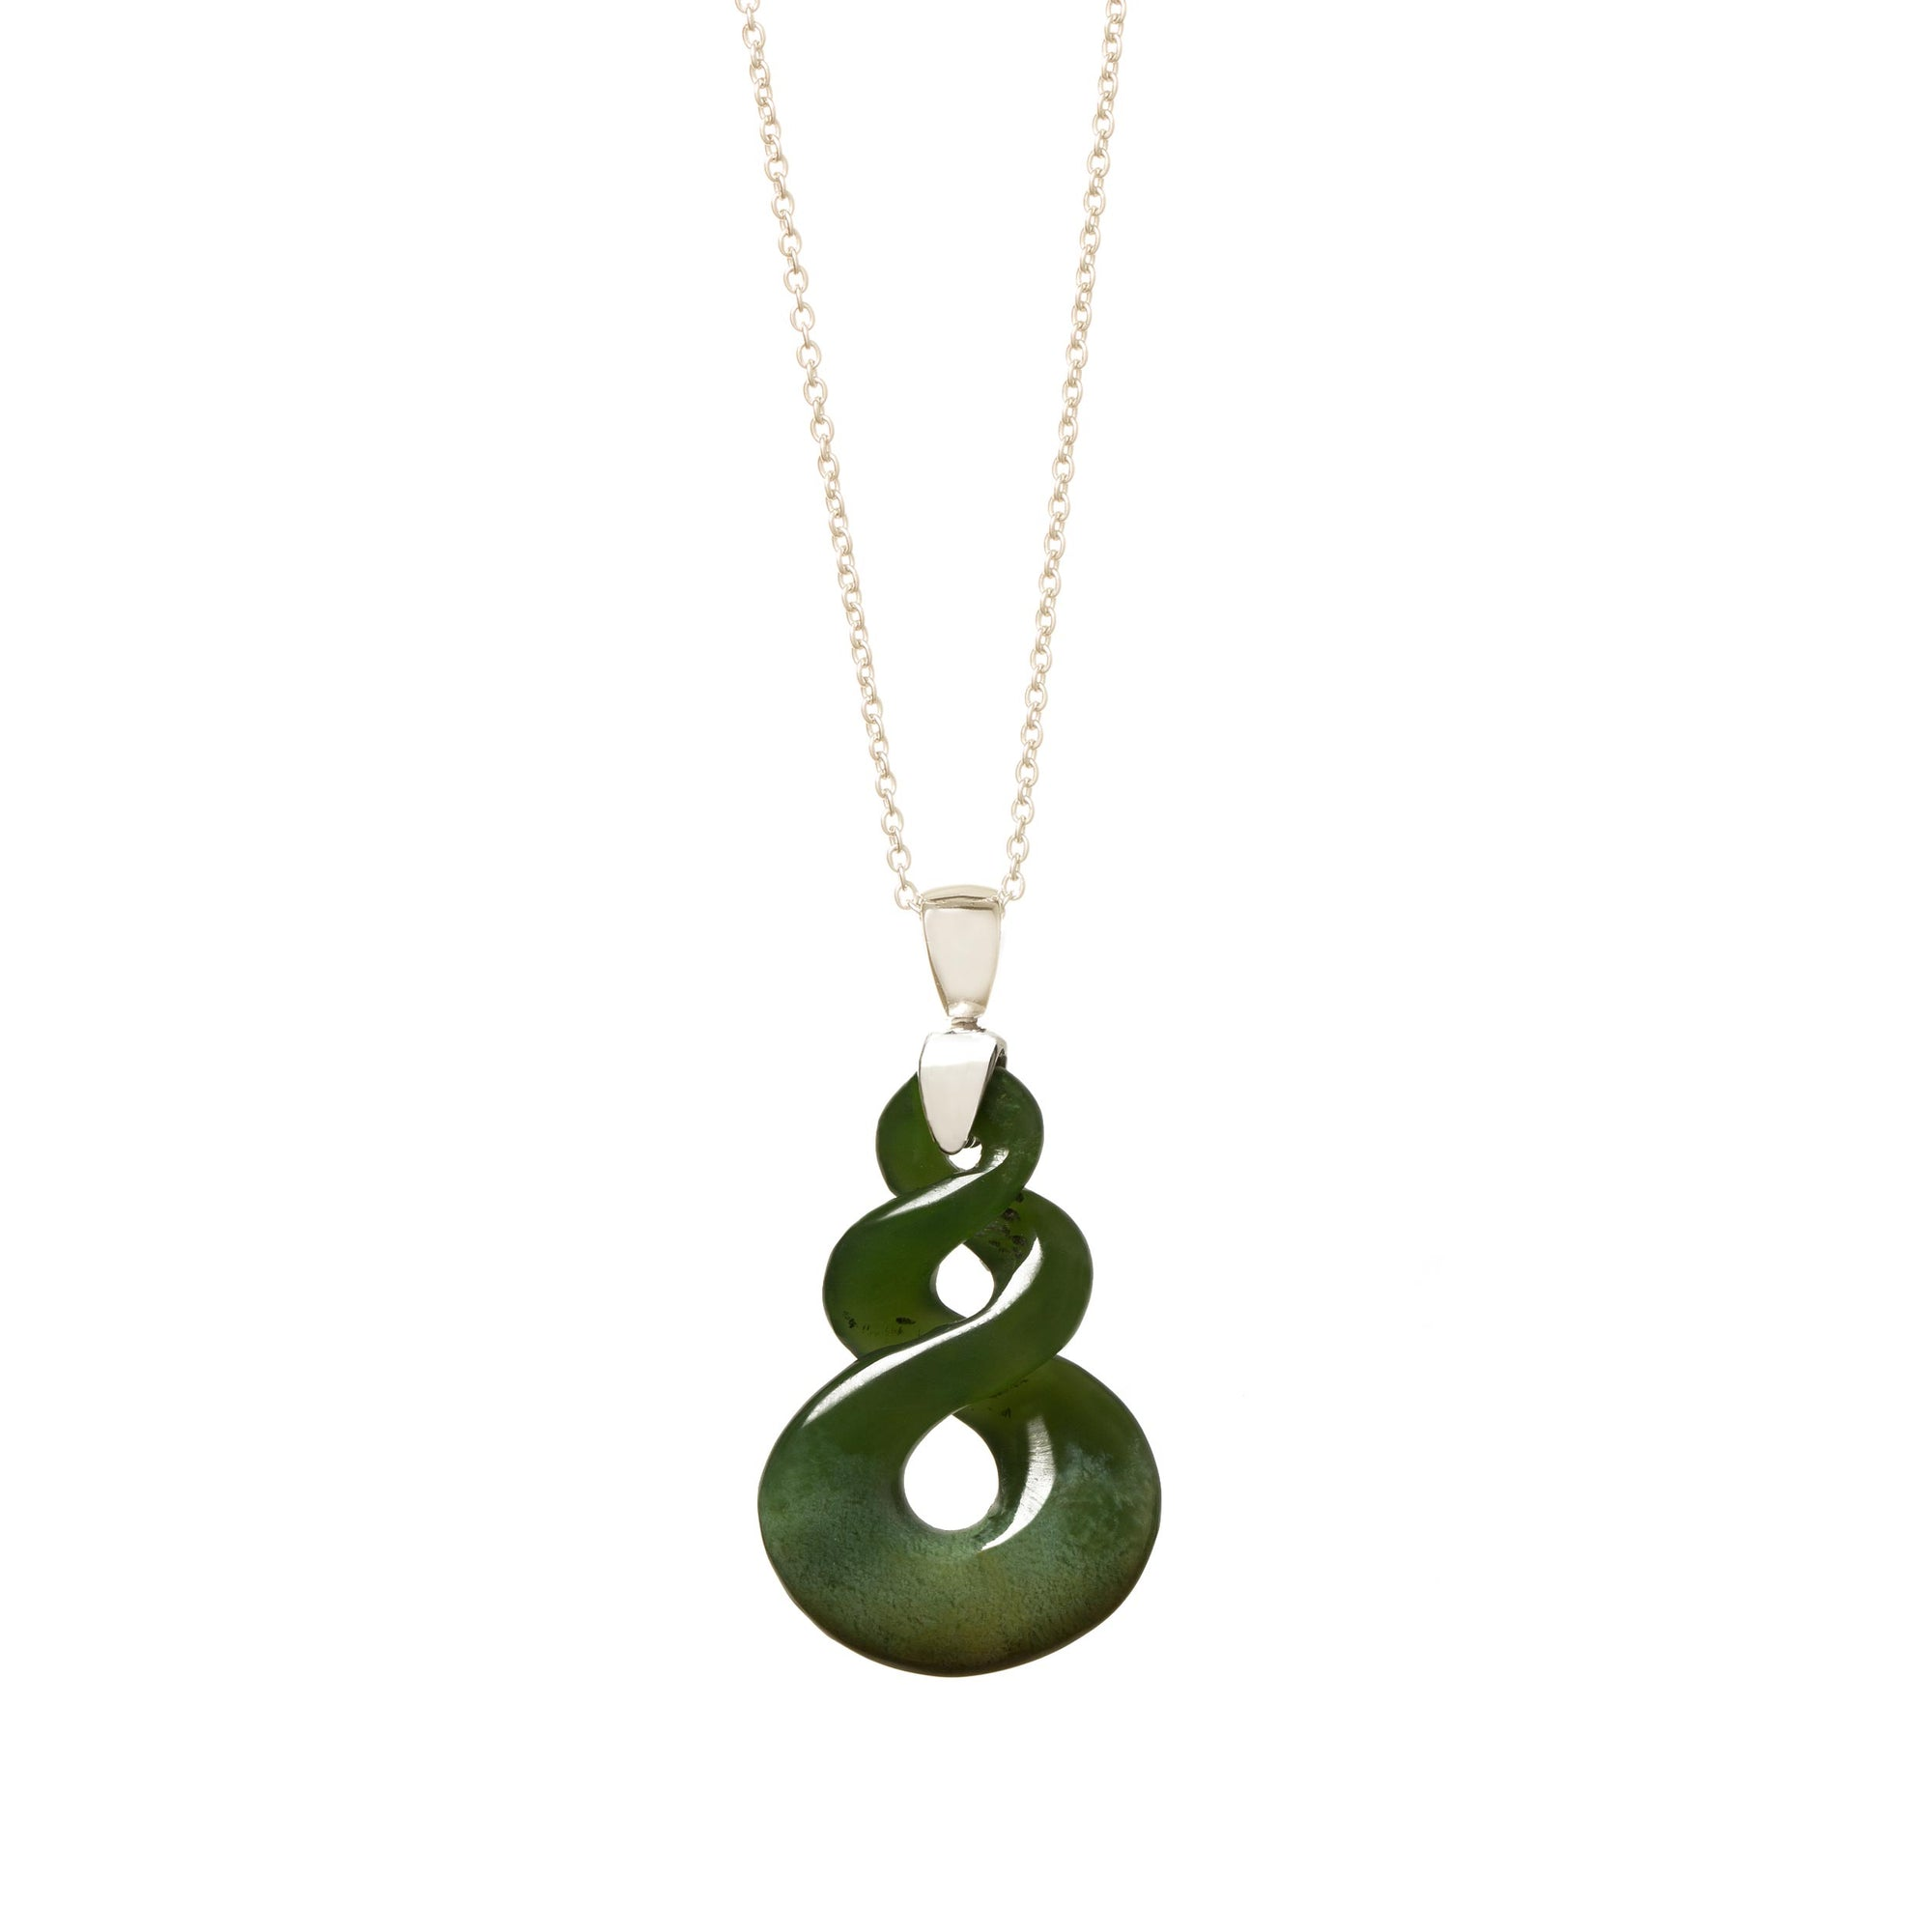 New Zealand Greenstone Double Twist with Sterling Silver Bale